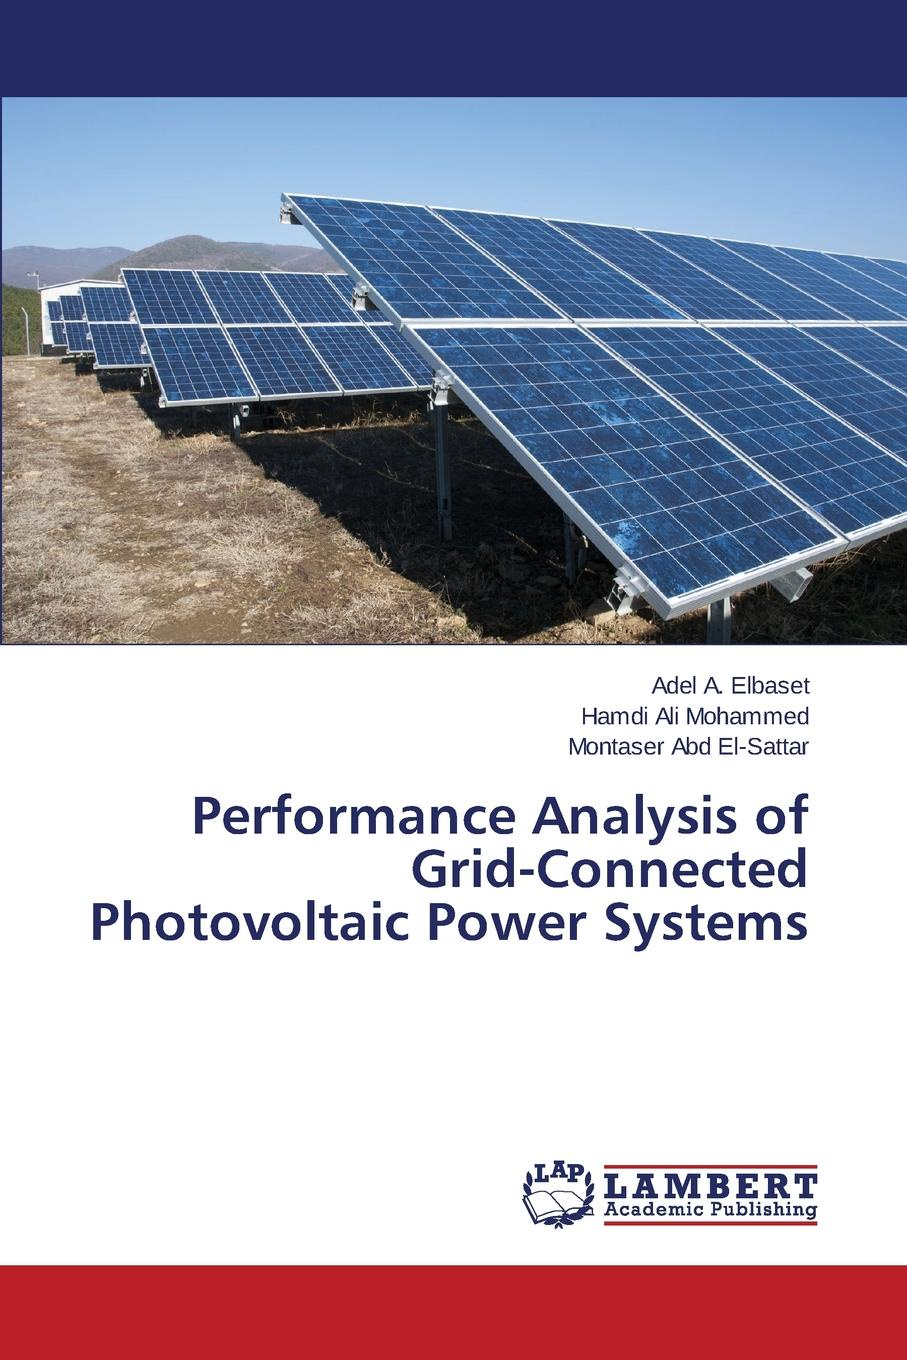 A. Elbaset Adel, Ali Mohammed Hamdi, Abd El-Sattar Montaser Performance Analysis of Grid-Connected Photovoltaic Power Systems invertor solar hybrid off grid dc to ac pure sine wave inverter 3000w 12v 220v for home use 3000w ren sinuskurve inverter